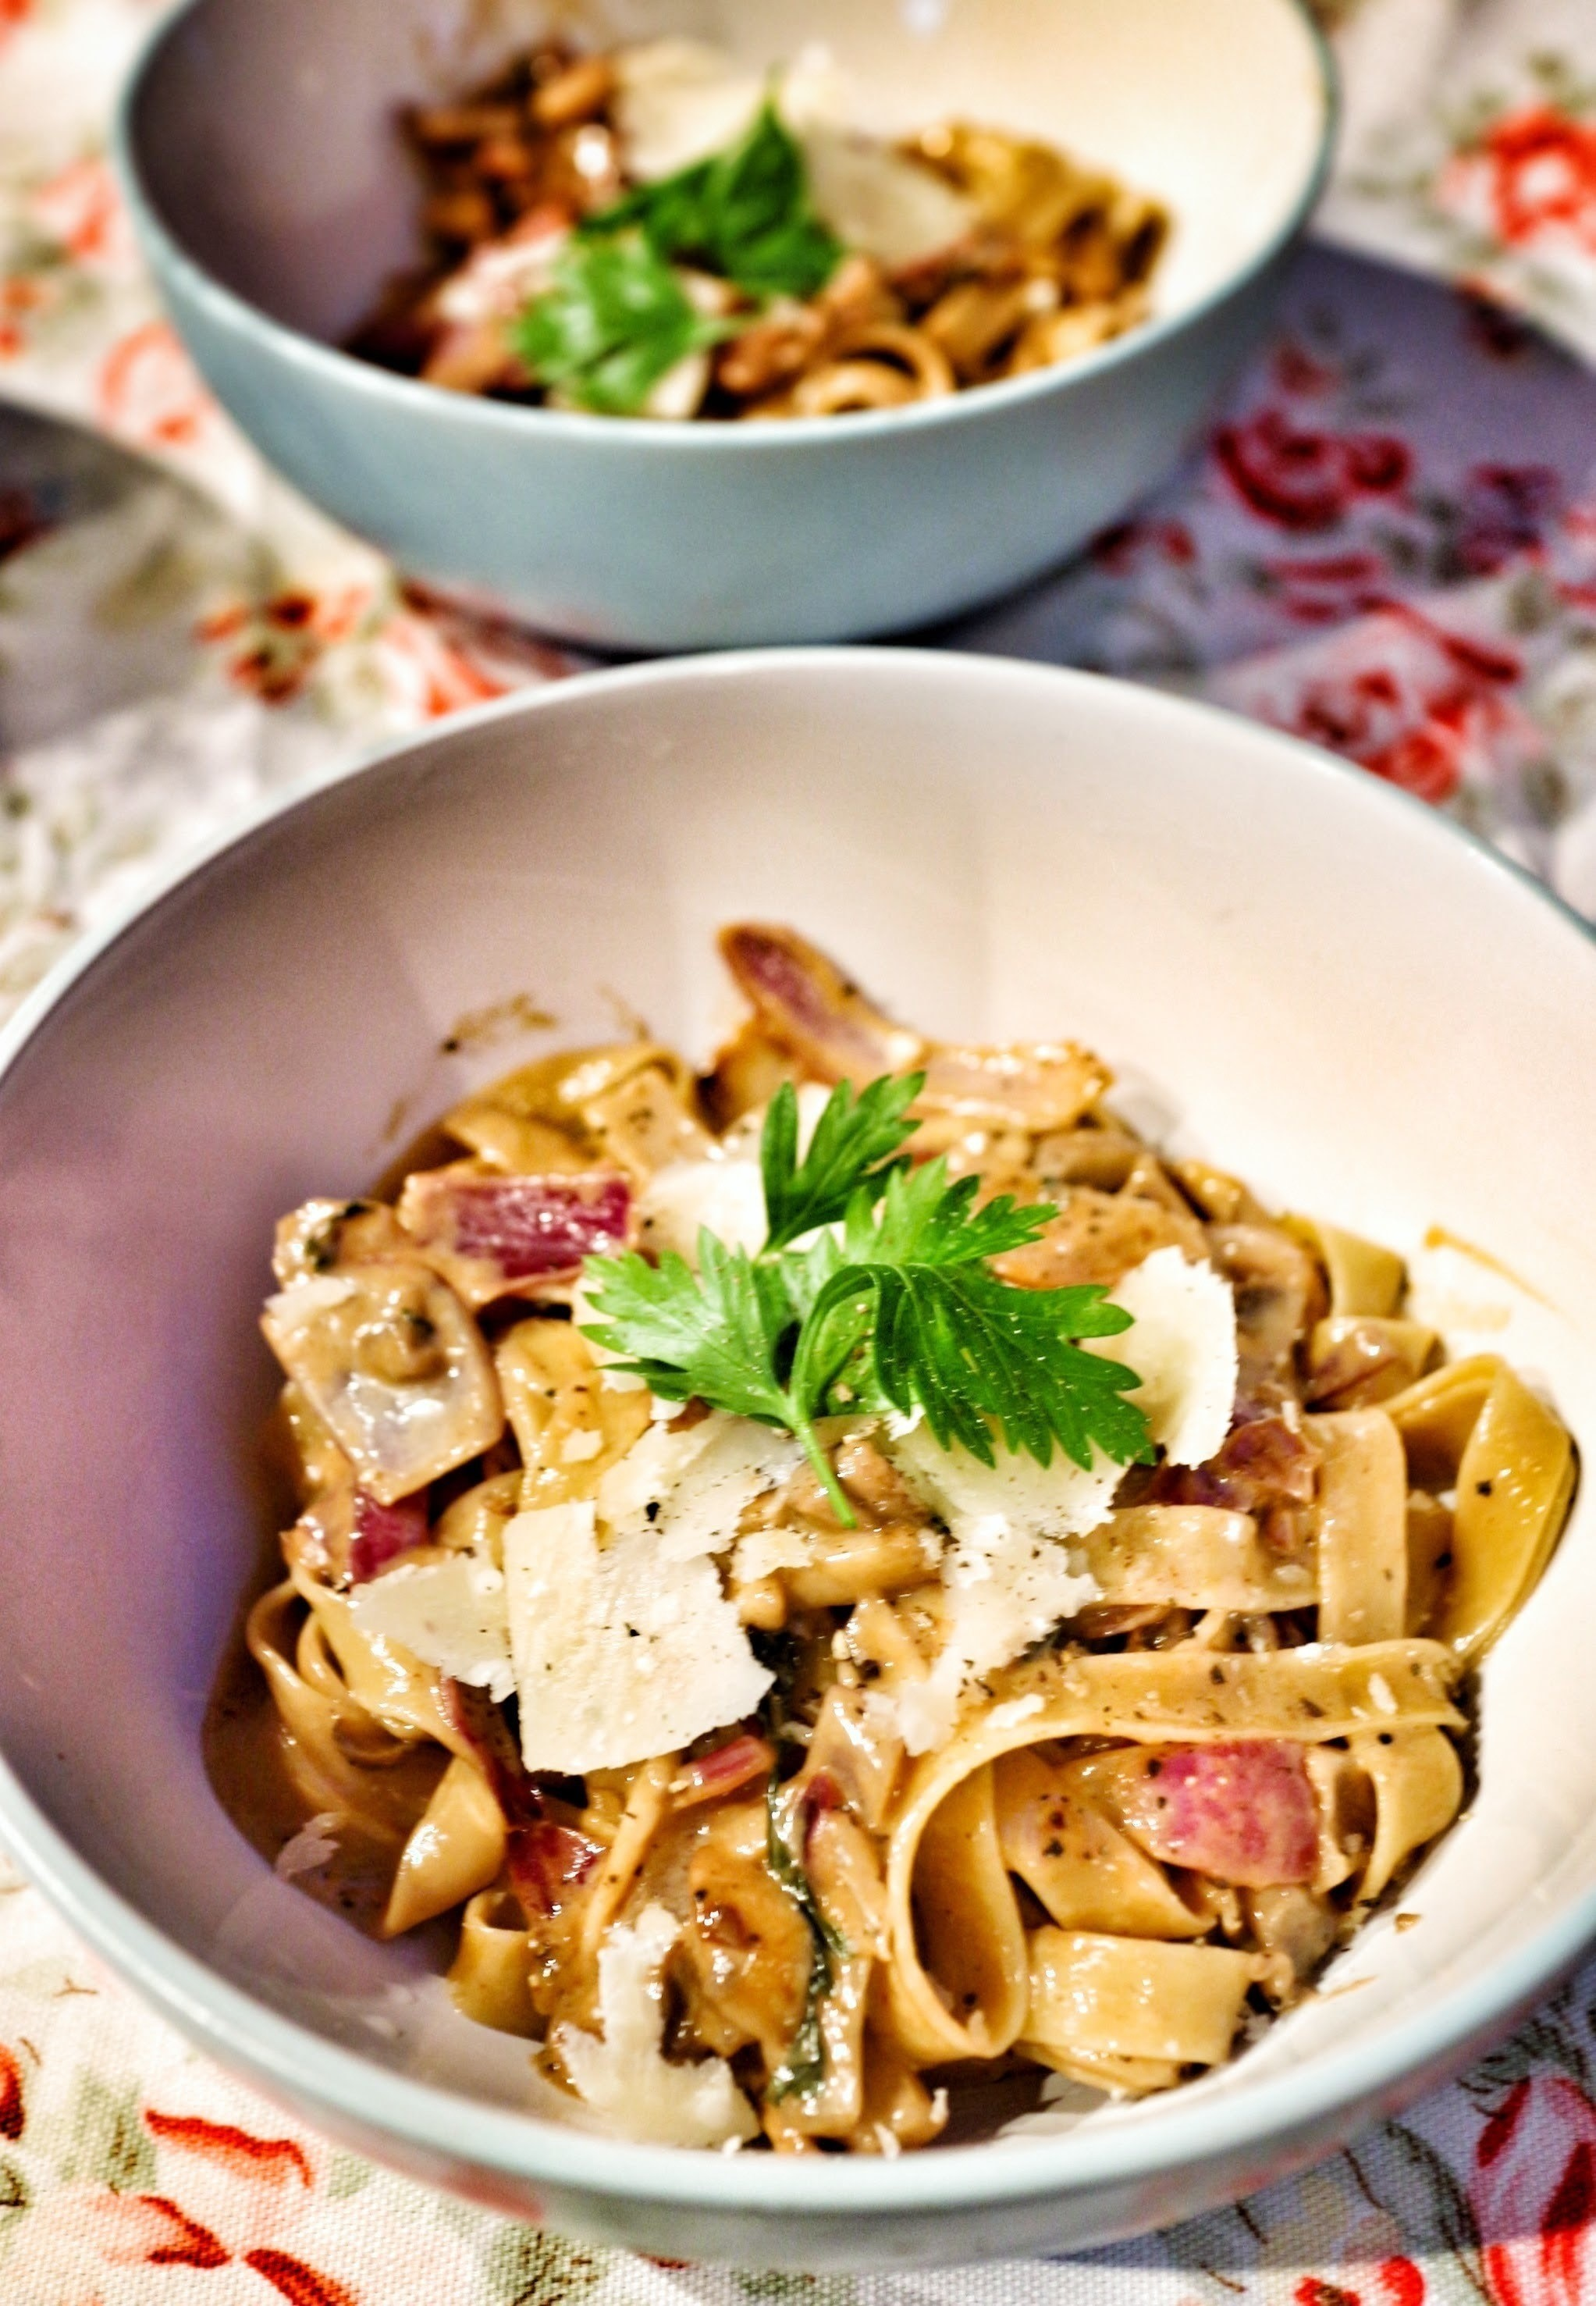 Mushroom Red Onion Amp Parsley Tagliatelle 183 How To Cook A Tagliatelle 183 Recipes On Cut Out Keep